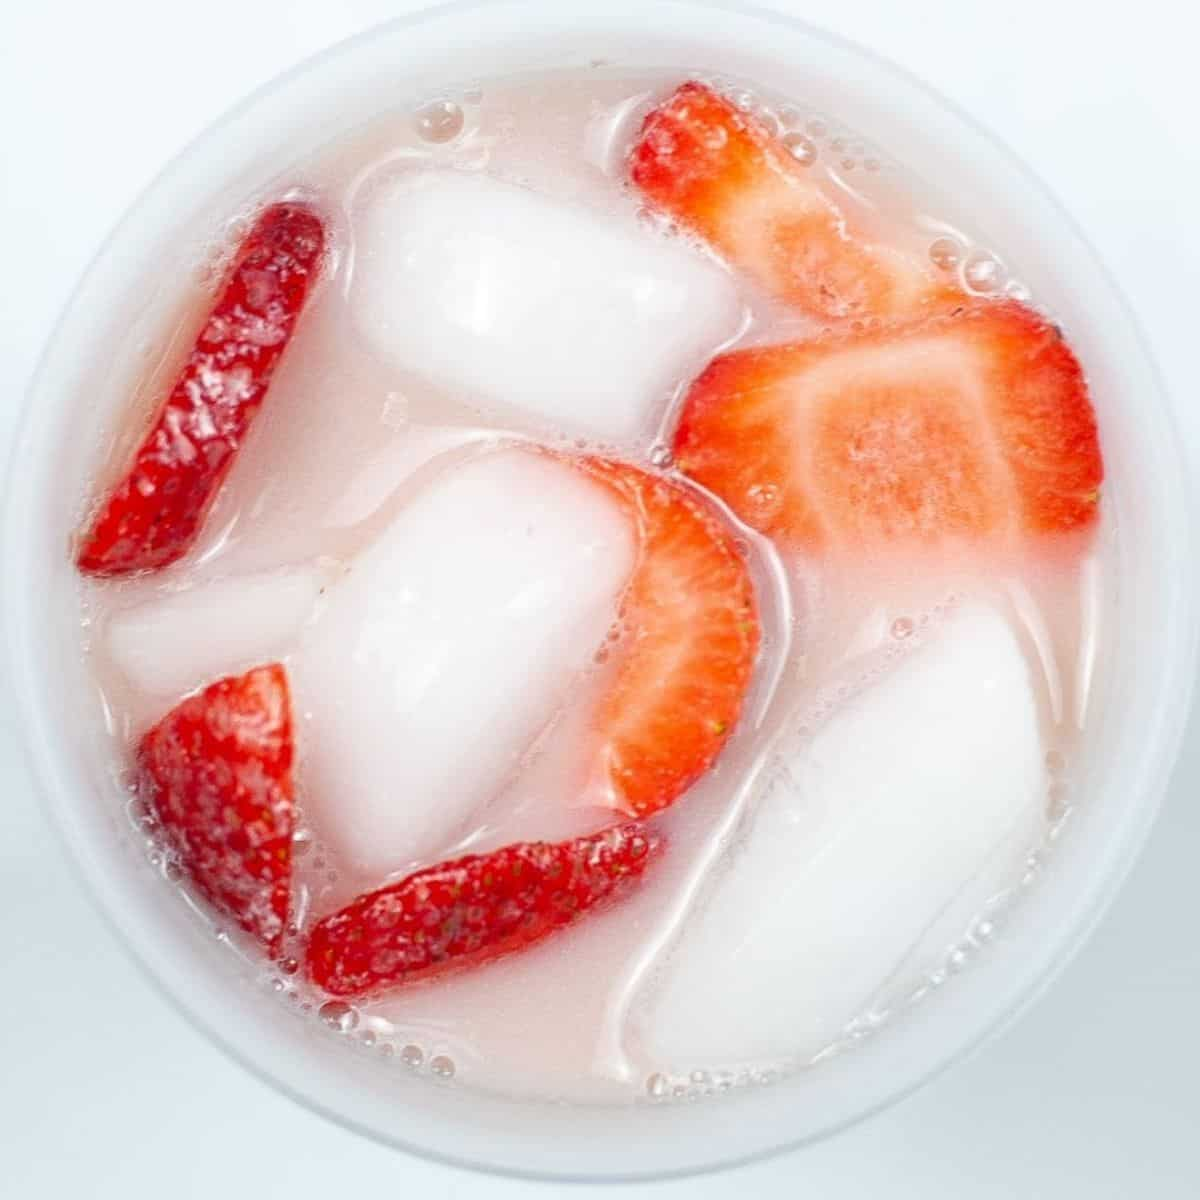 An overhead view of a cup with ice, strawberries, and pink drink.